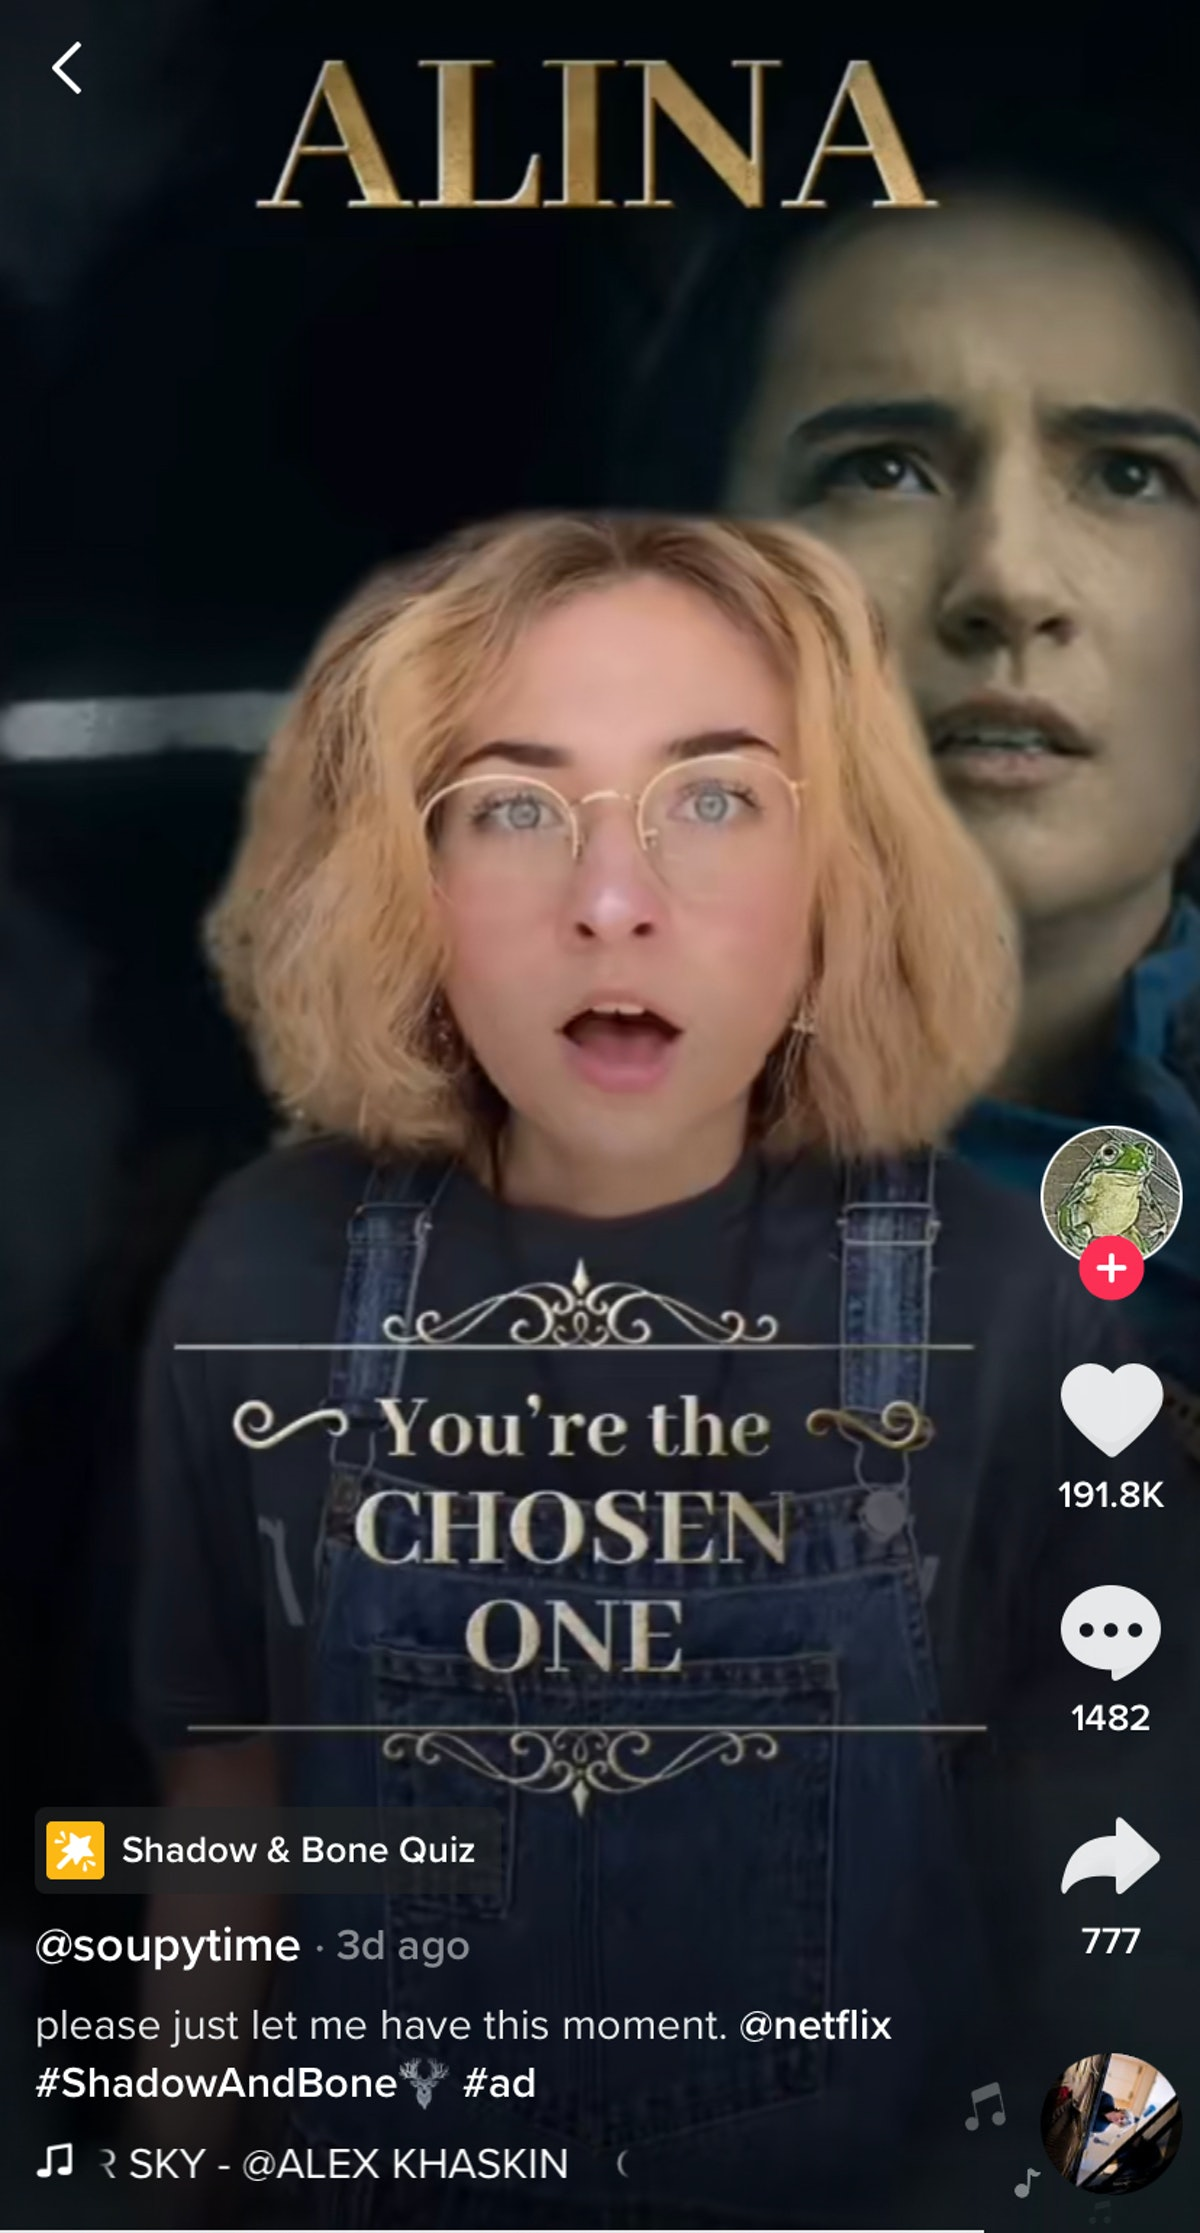 A TikToker takes the 'Shadow and Bone' quiz on TikTok and gets Alina.